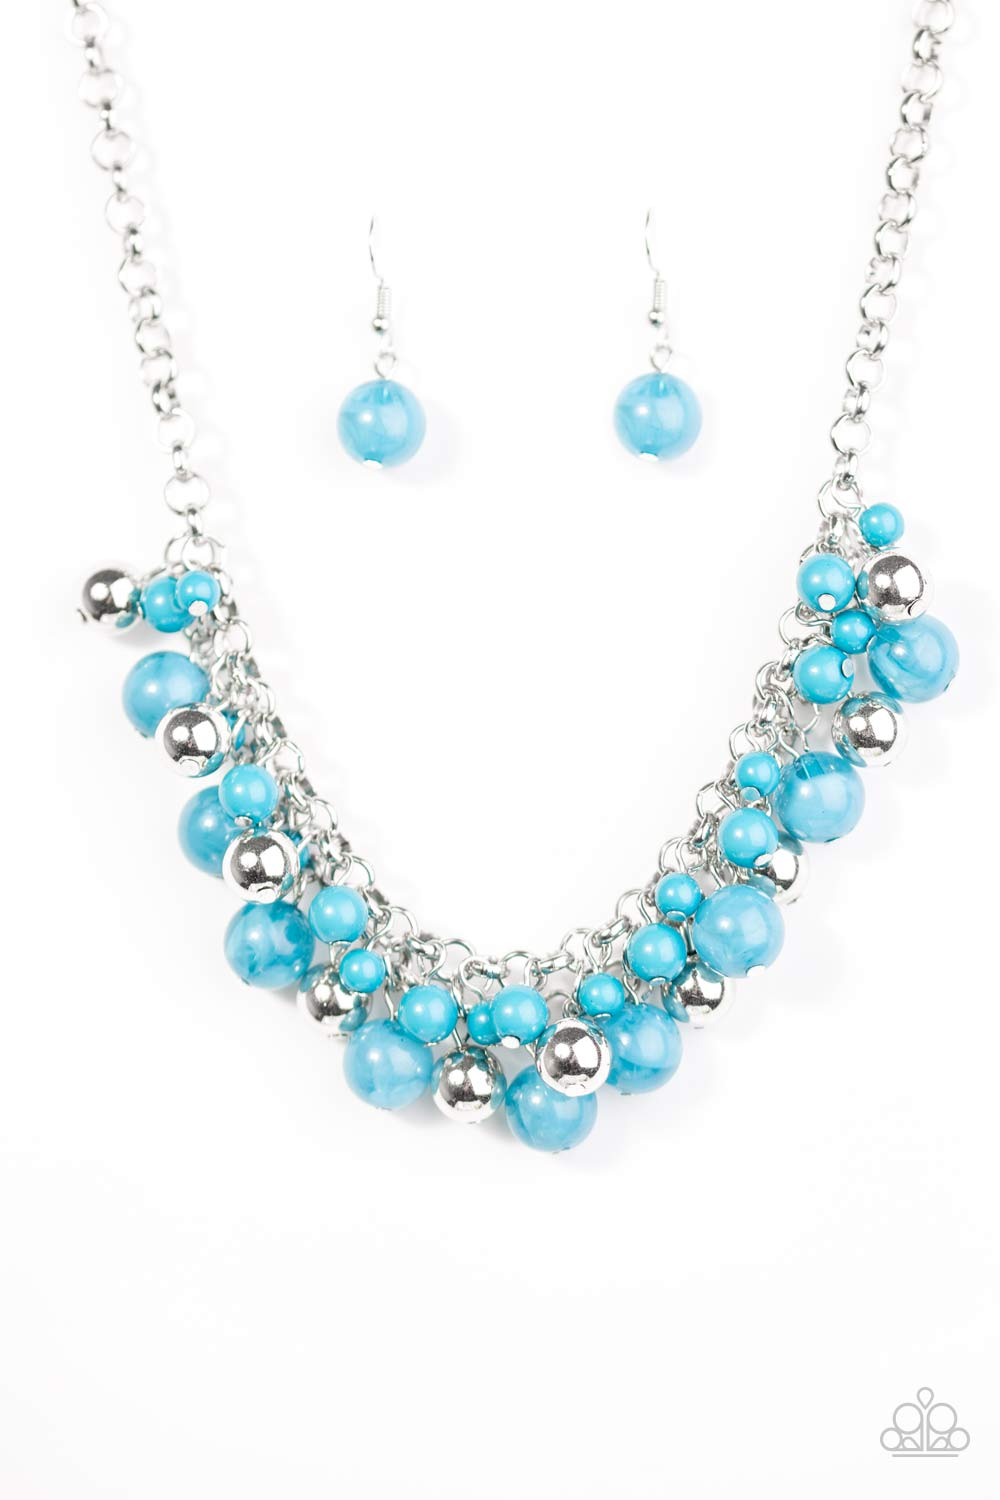 Paparazzi Necklace - For The Love Of Fashion- Blue